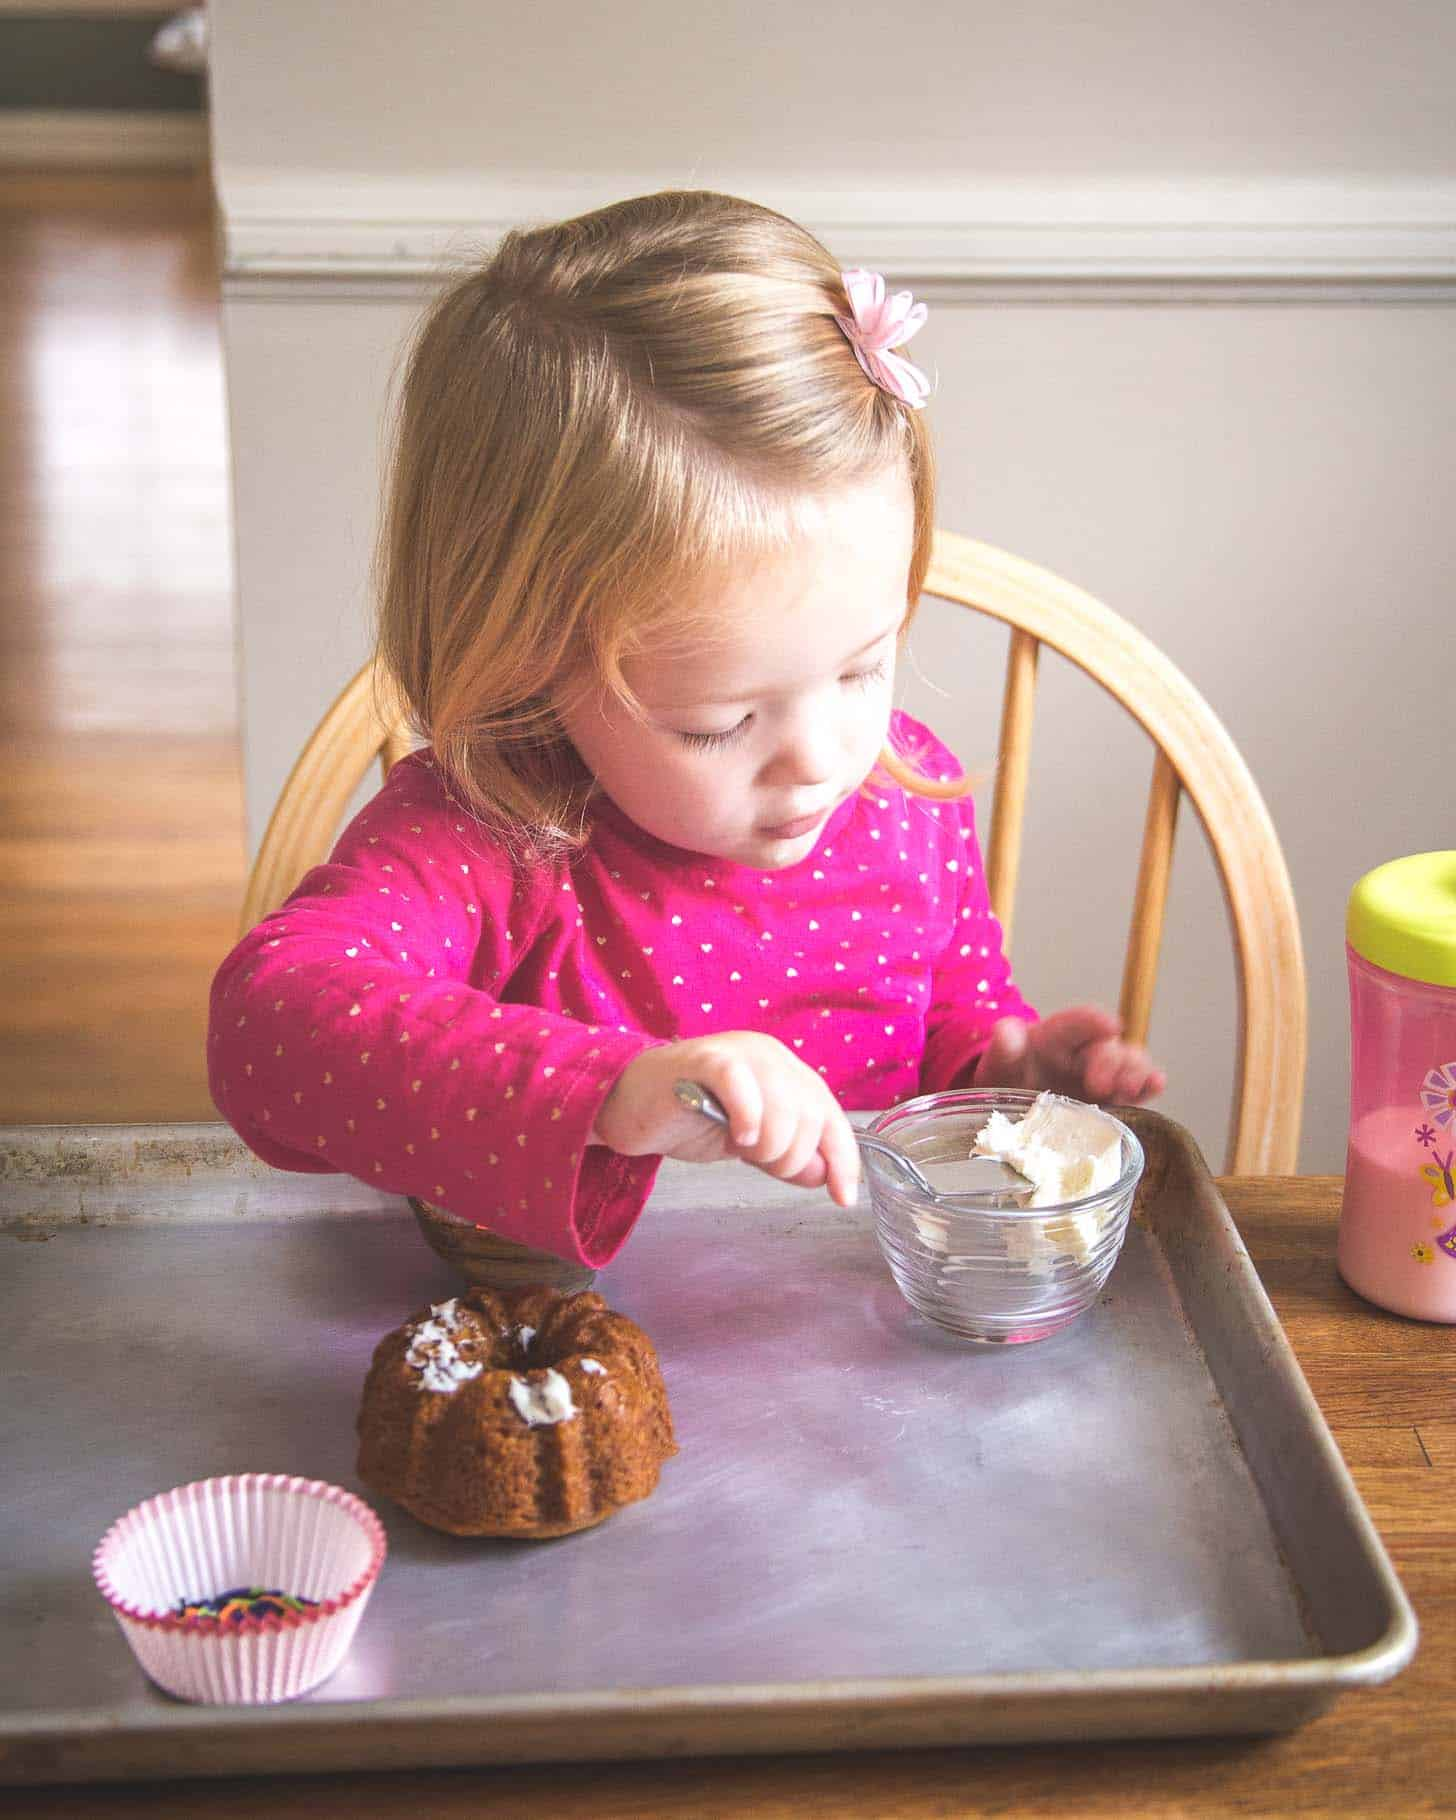 Baking with Toddlers_Molly - Baking with Toddlers